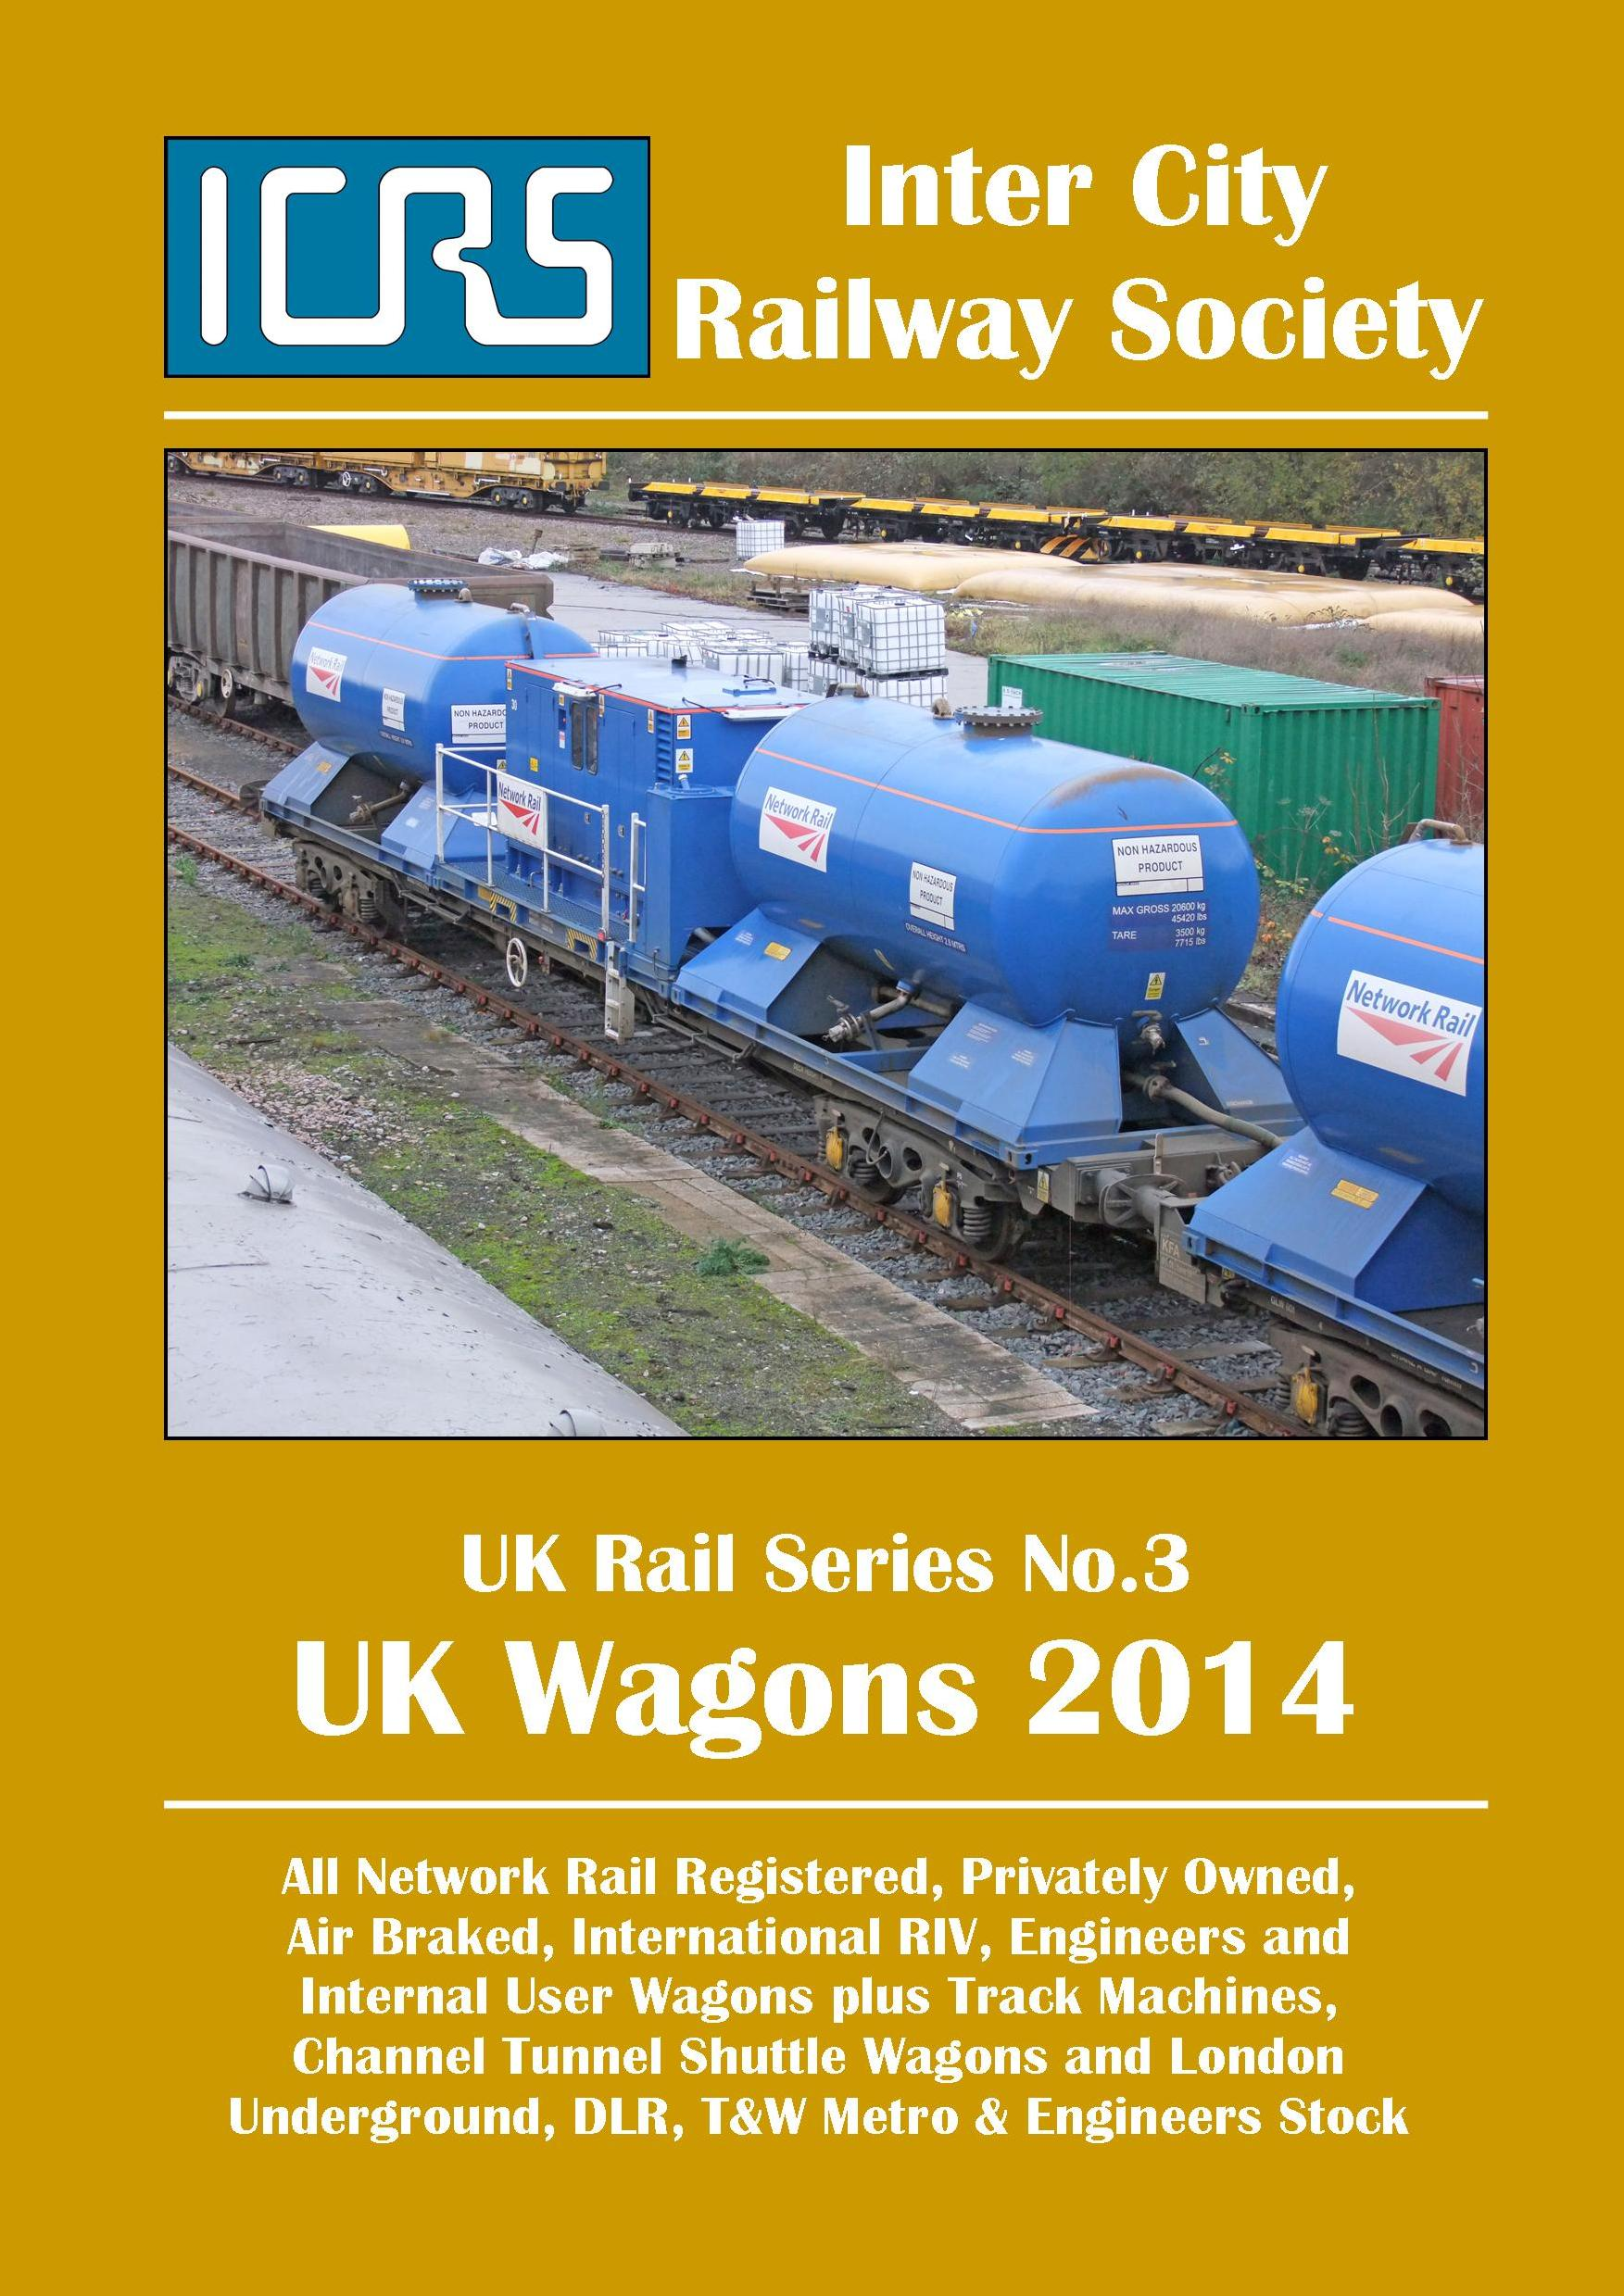 UKRS03 UK Wagons 2014